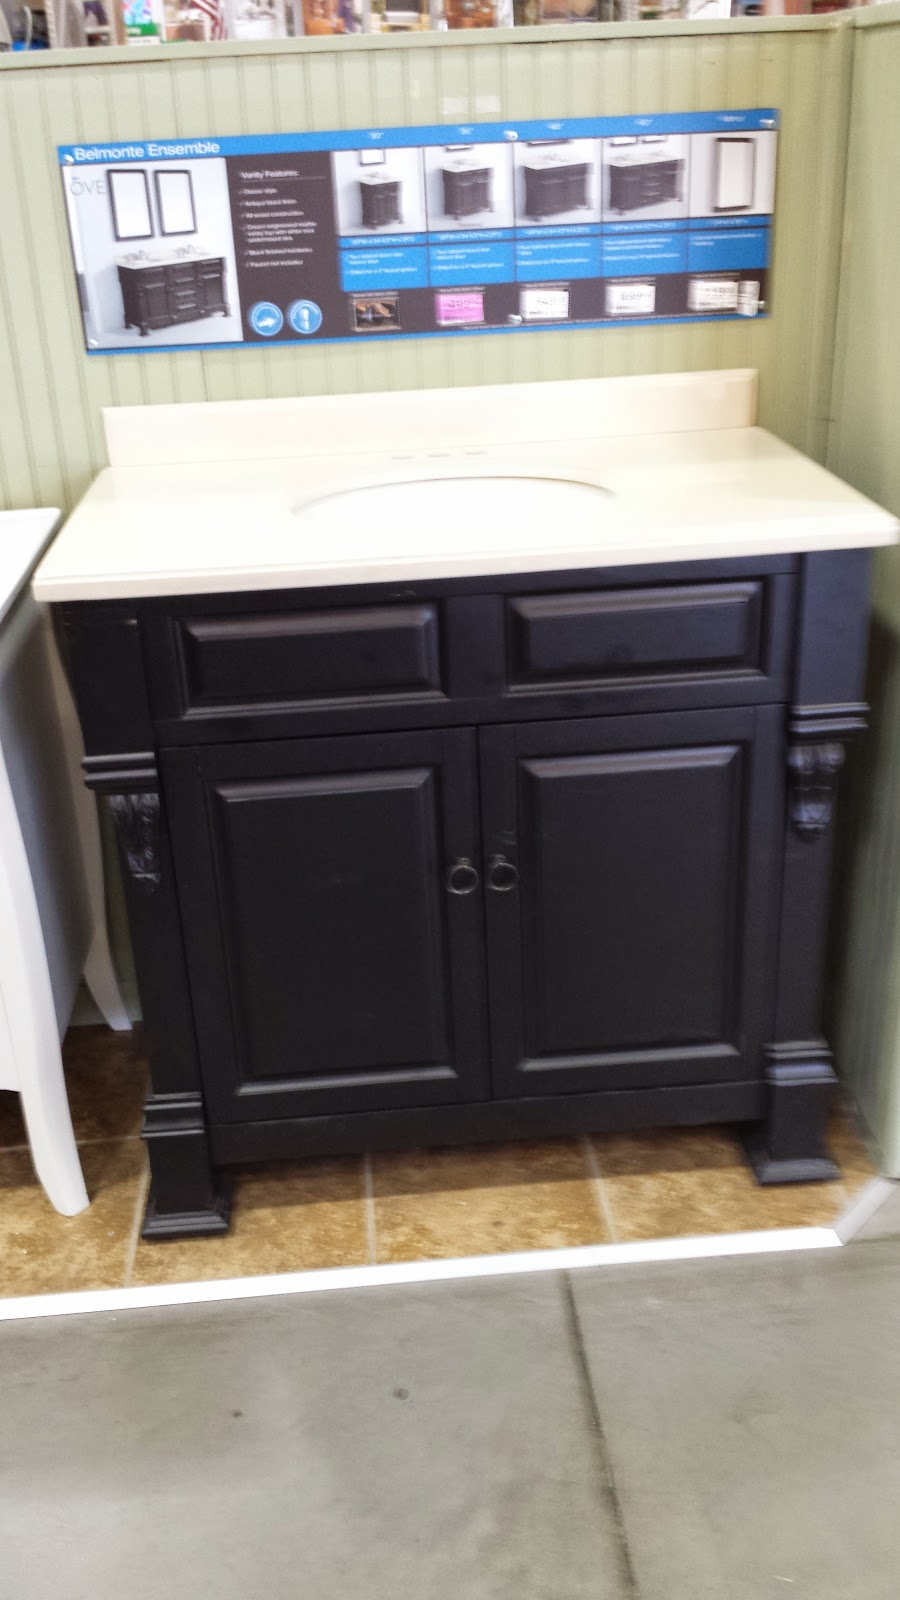 And Speaking Of Bathroom Vanities That Look Like Furniture, Making An Old  Dresser Into A Bathroom Vanity Is Not Off The Table Either.